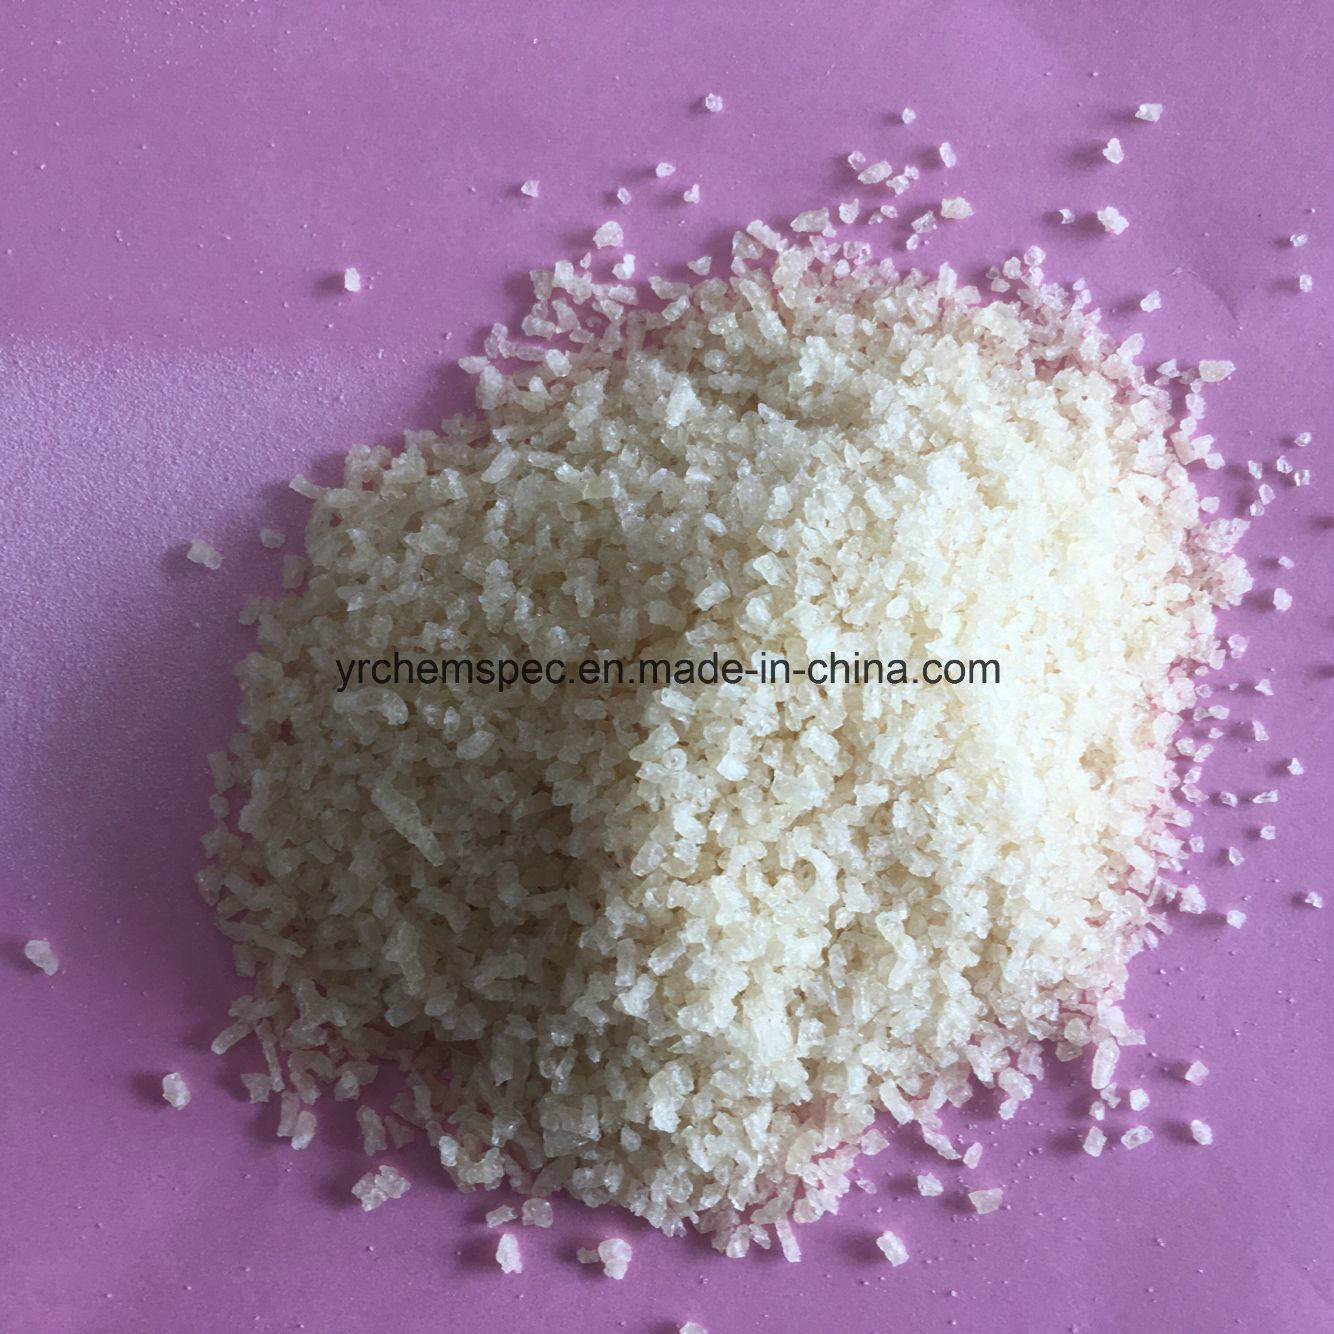 Cosmetic Grade Raw Material Gelatin pictures & photos